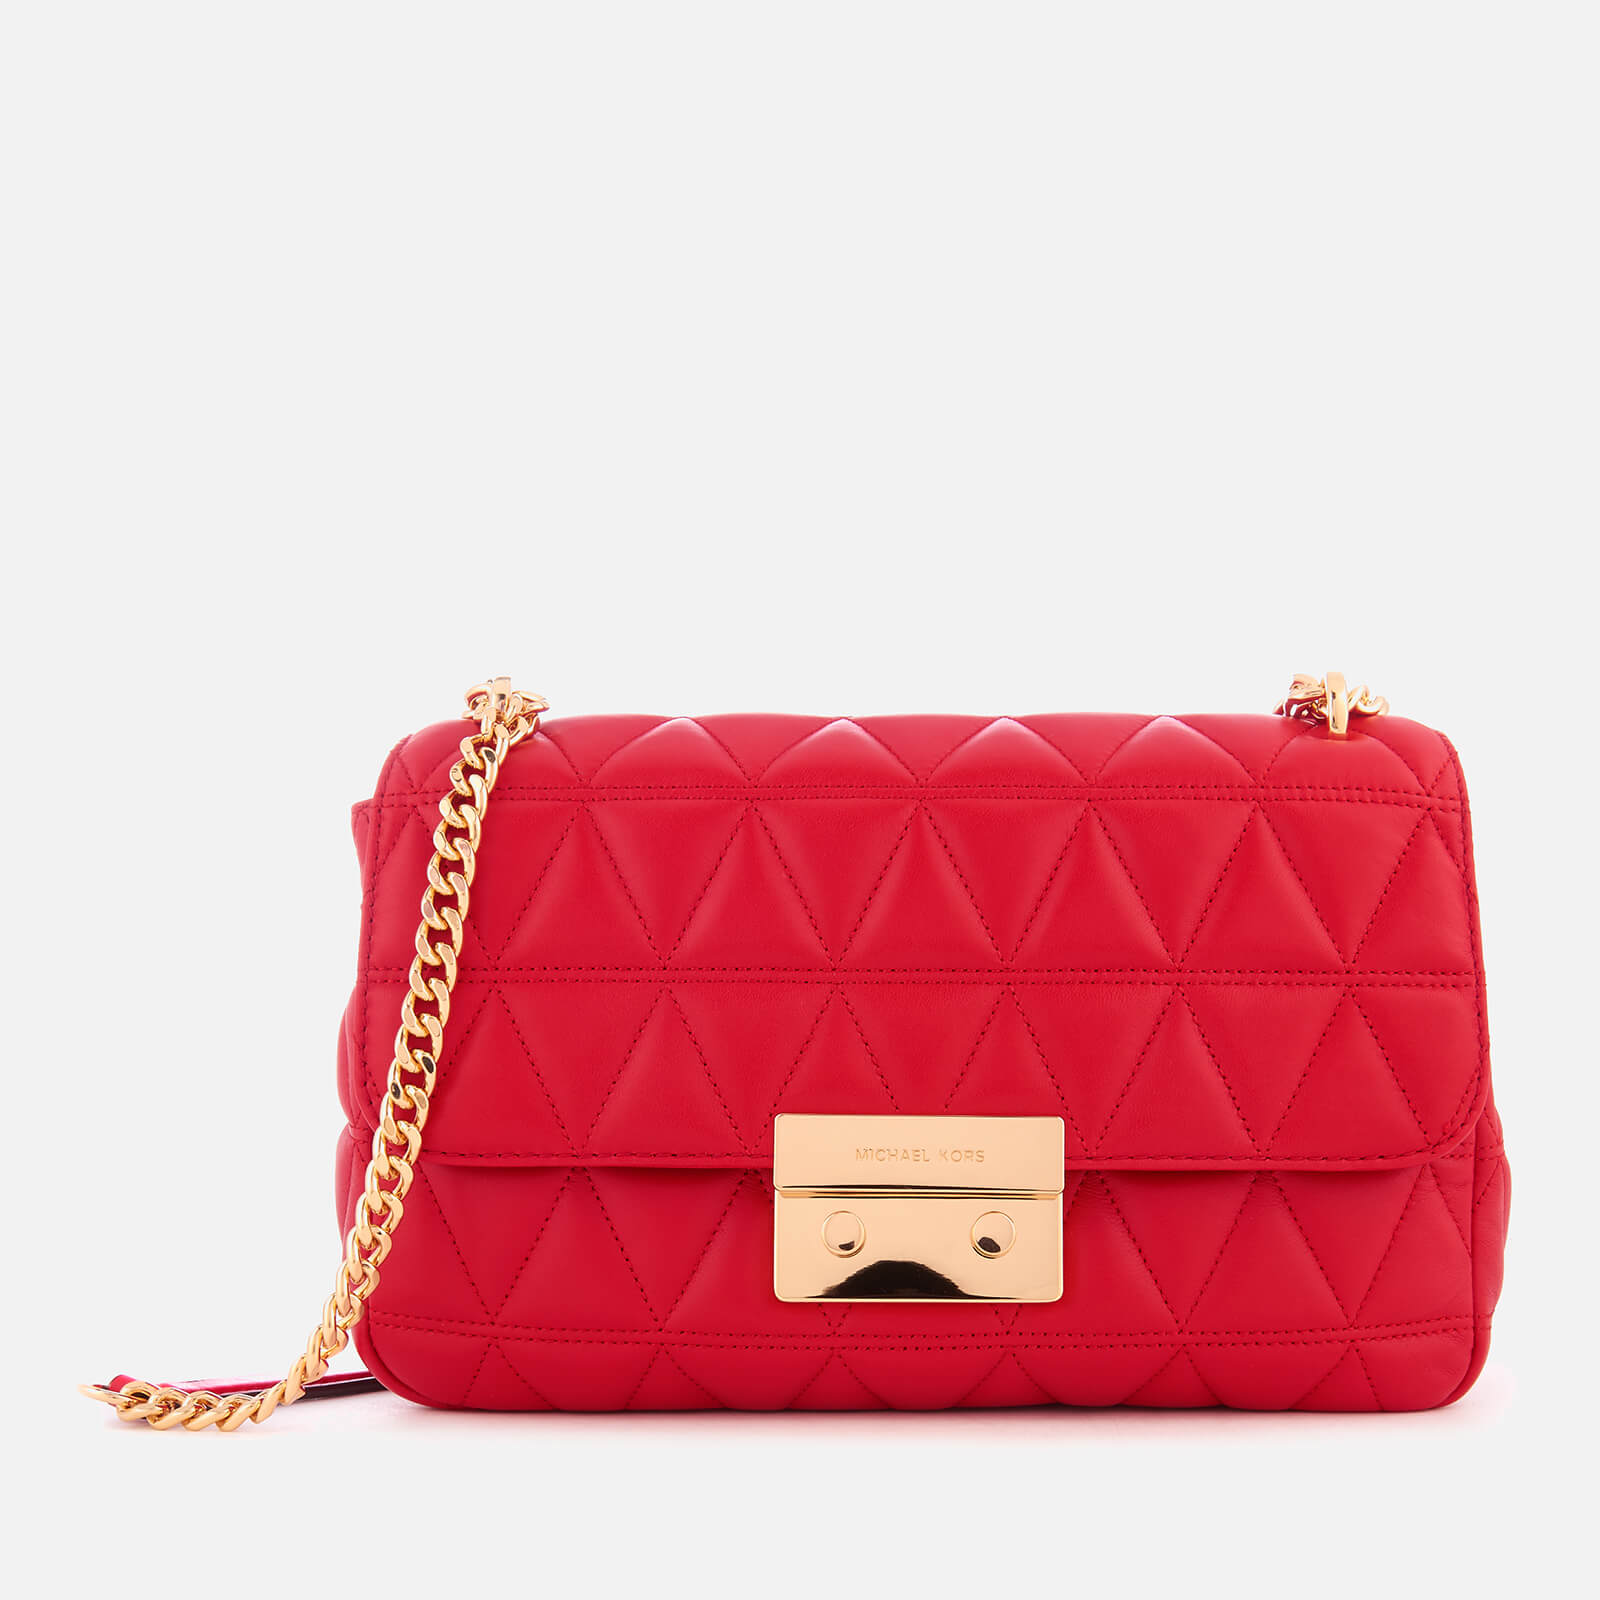 30b2e46a841 MICHAEL MICHAEL KORS Women s Sloan Large Chain Shoulder Bag - Bright Red -  Free UK Delivery over £50